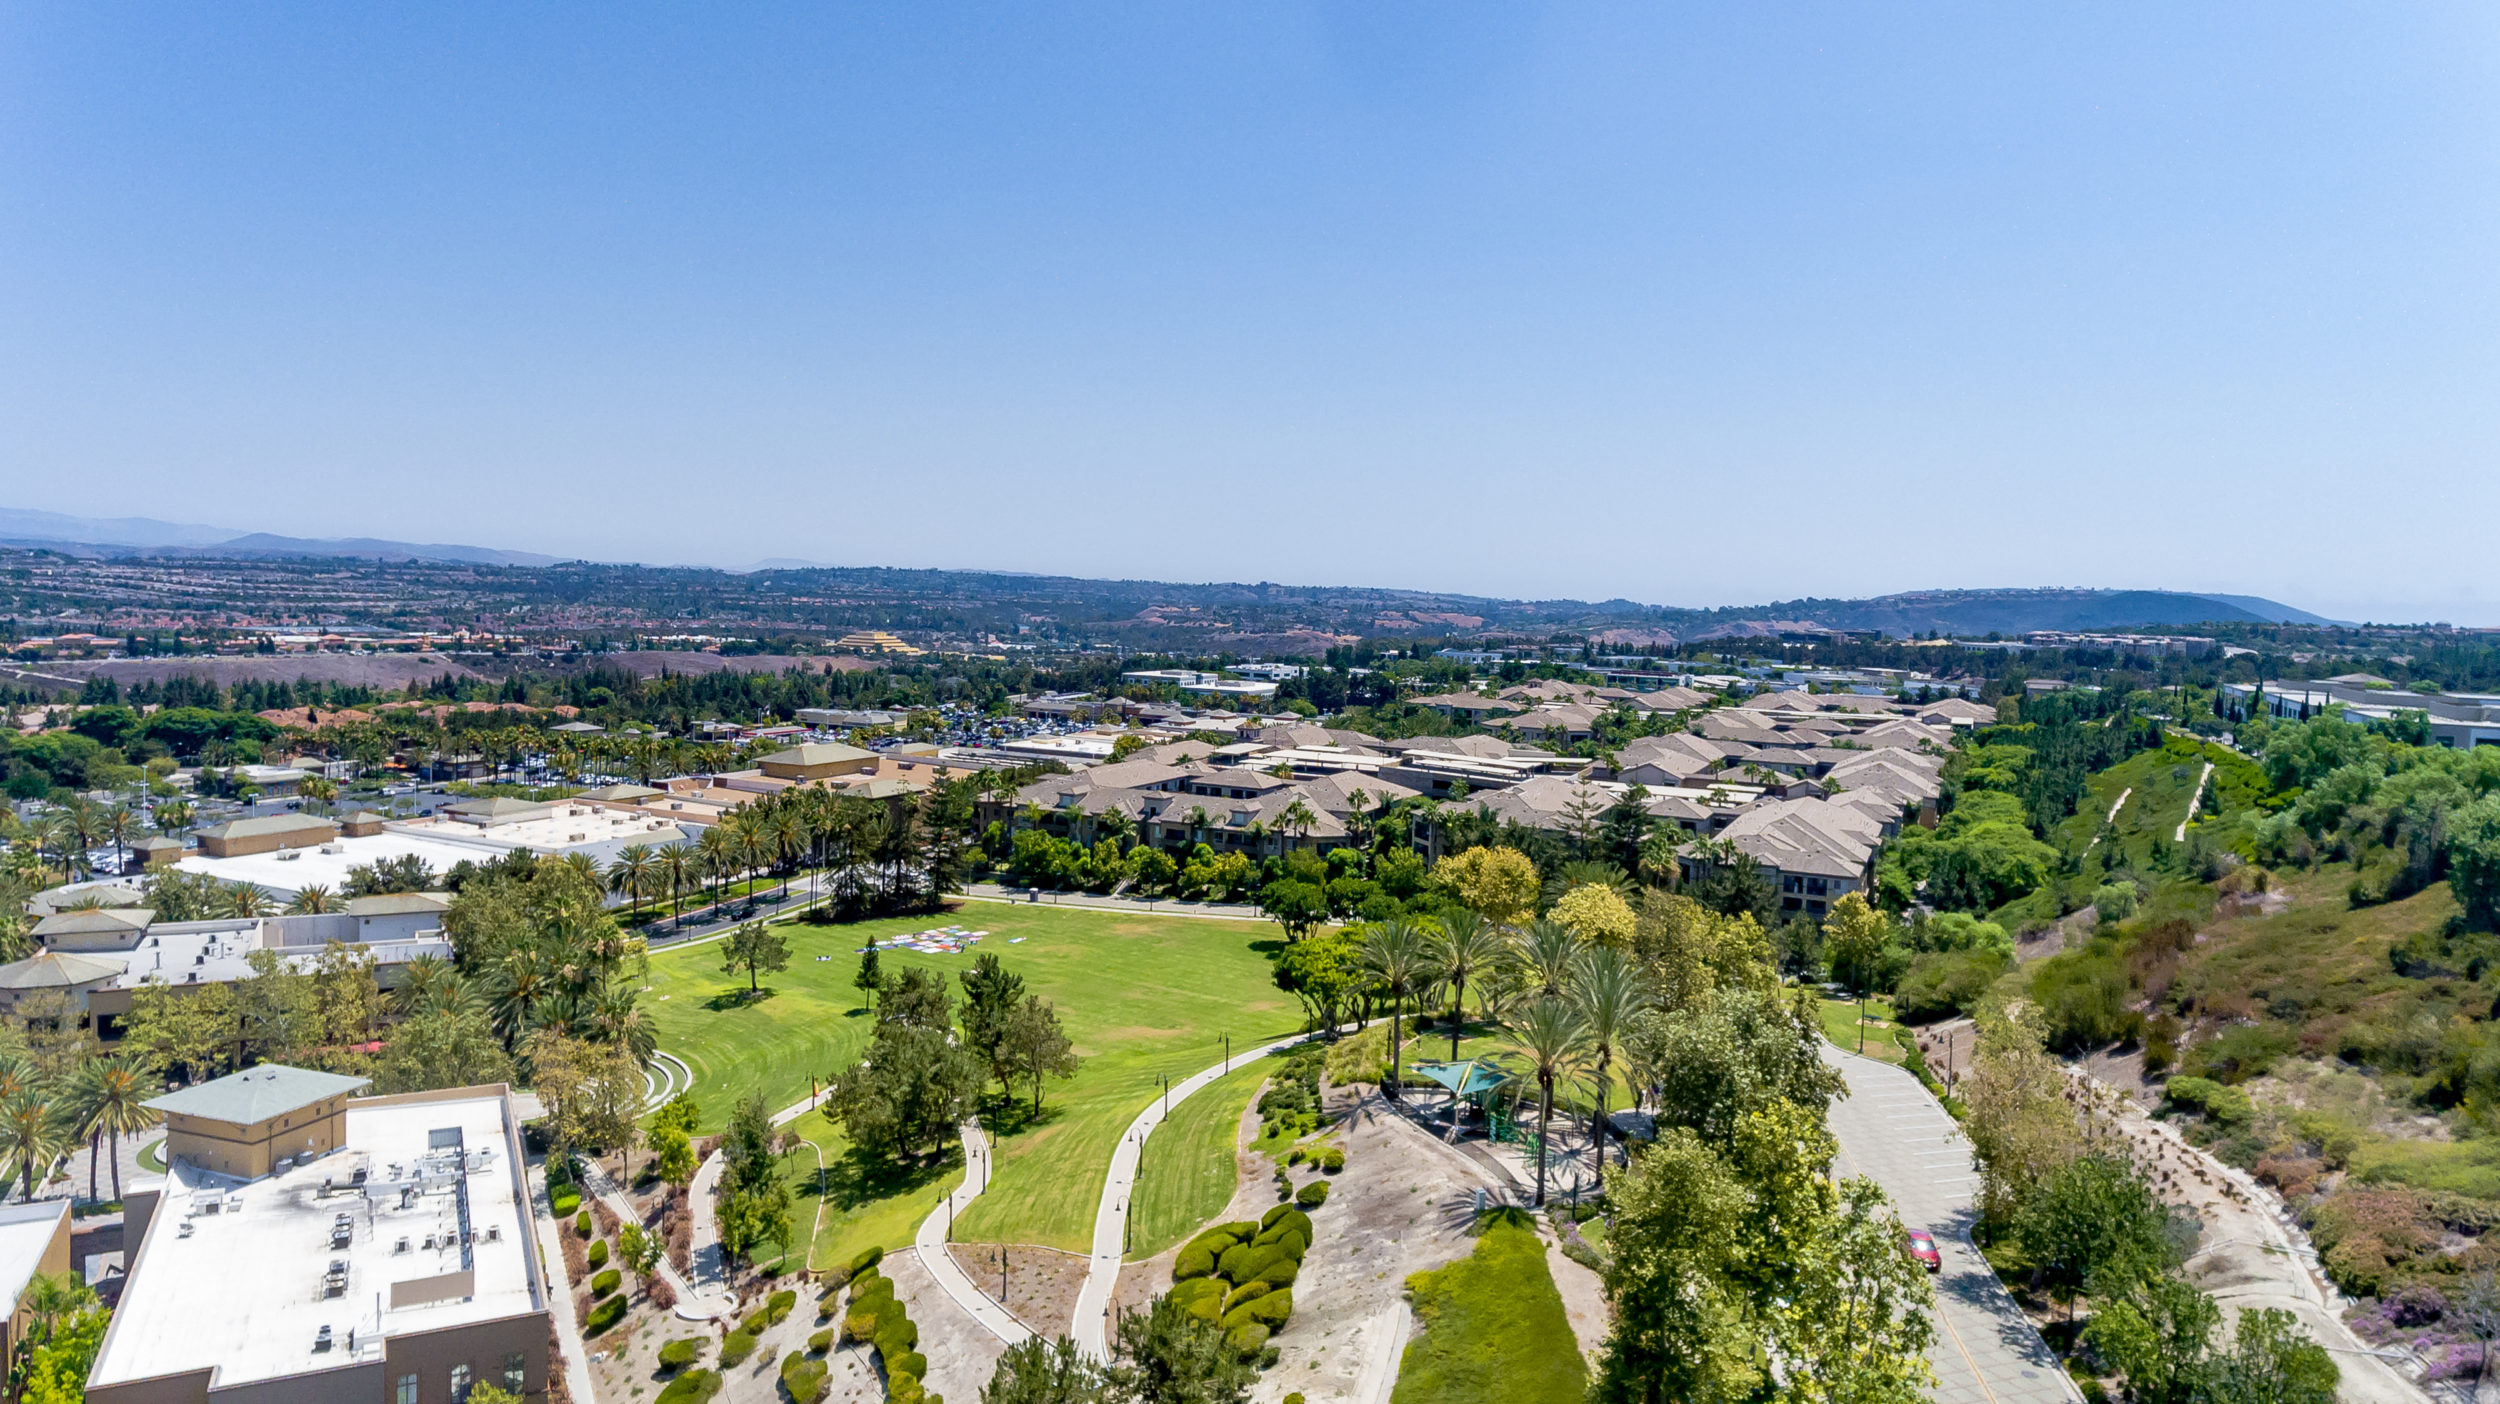 View of Aliso Viejo neighborhoods